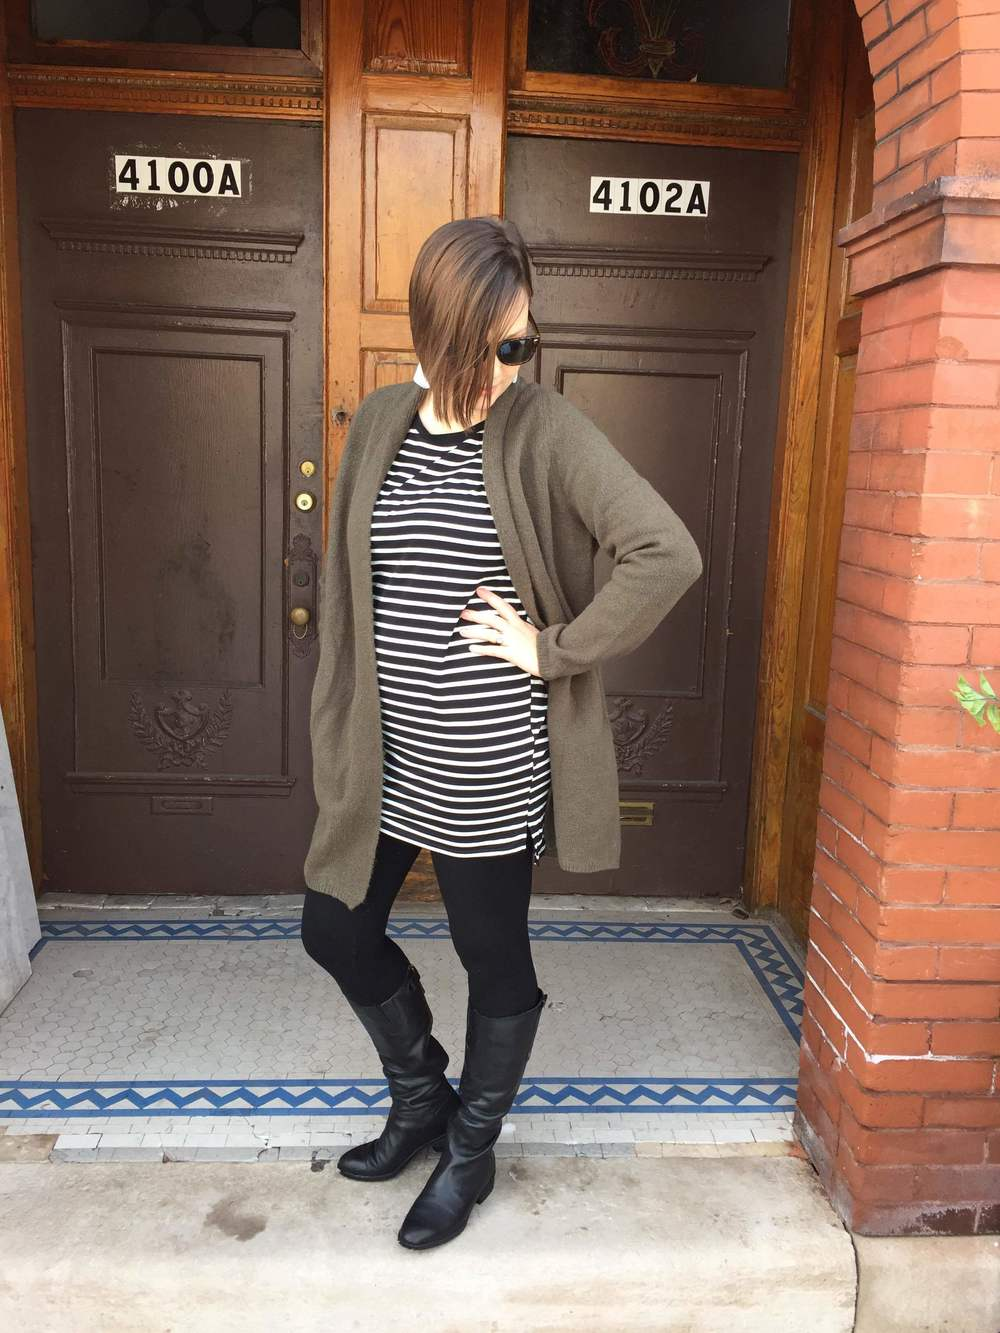 Olive Grandfather Sweater:$40 Stripe Dress: $28 Leggings: $32